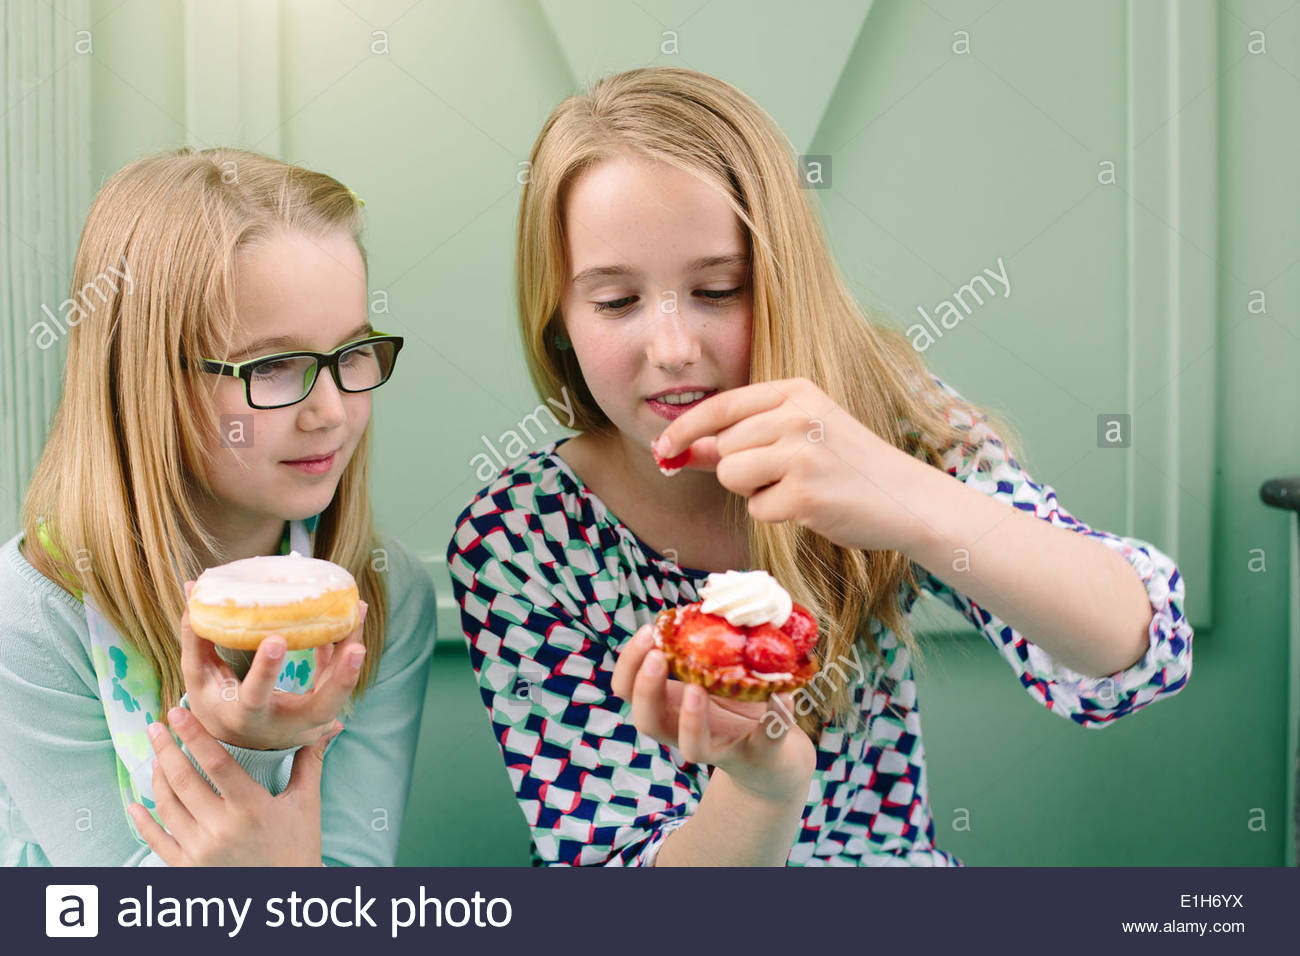 Two sisters holding cakes and strawberry - Stock Image